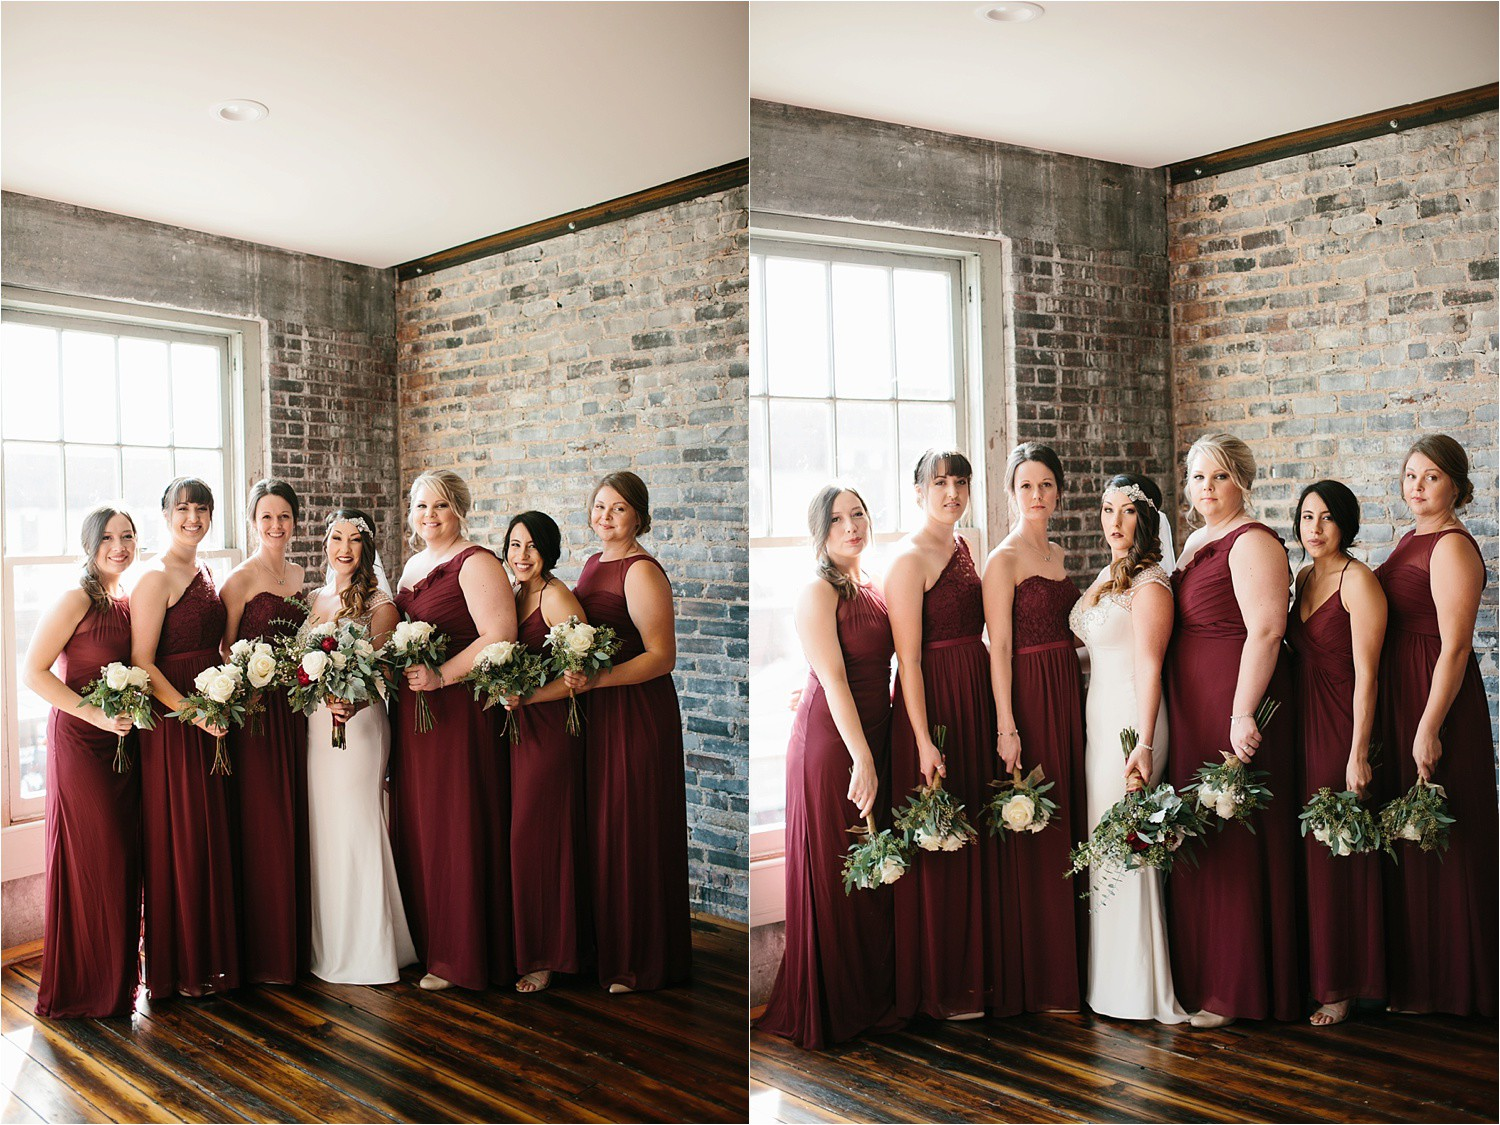 whittney-drew-__-an-intimate-wine-and-navy-wedding-in-an-industrial-venue-at-loft-123-in-paris-tx-by-north-texas-wedding-photographer-rachel-meagan-photography-_-031